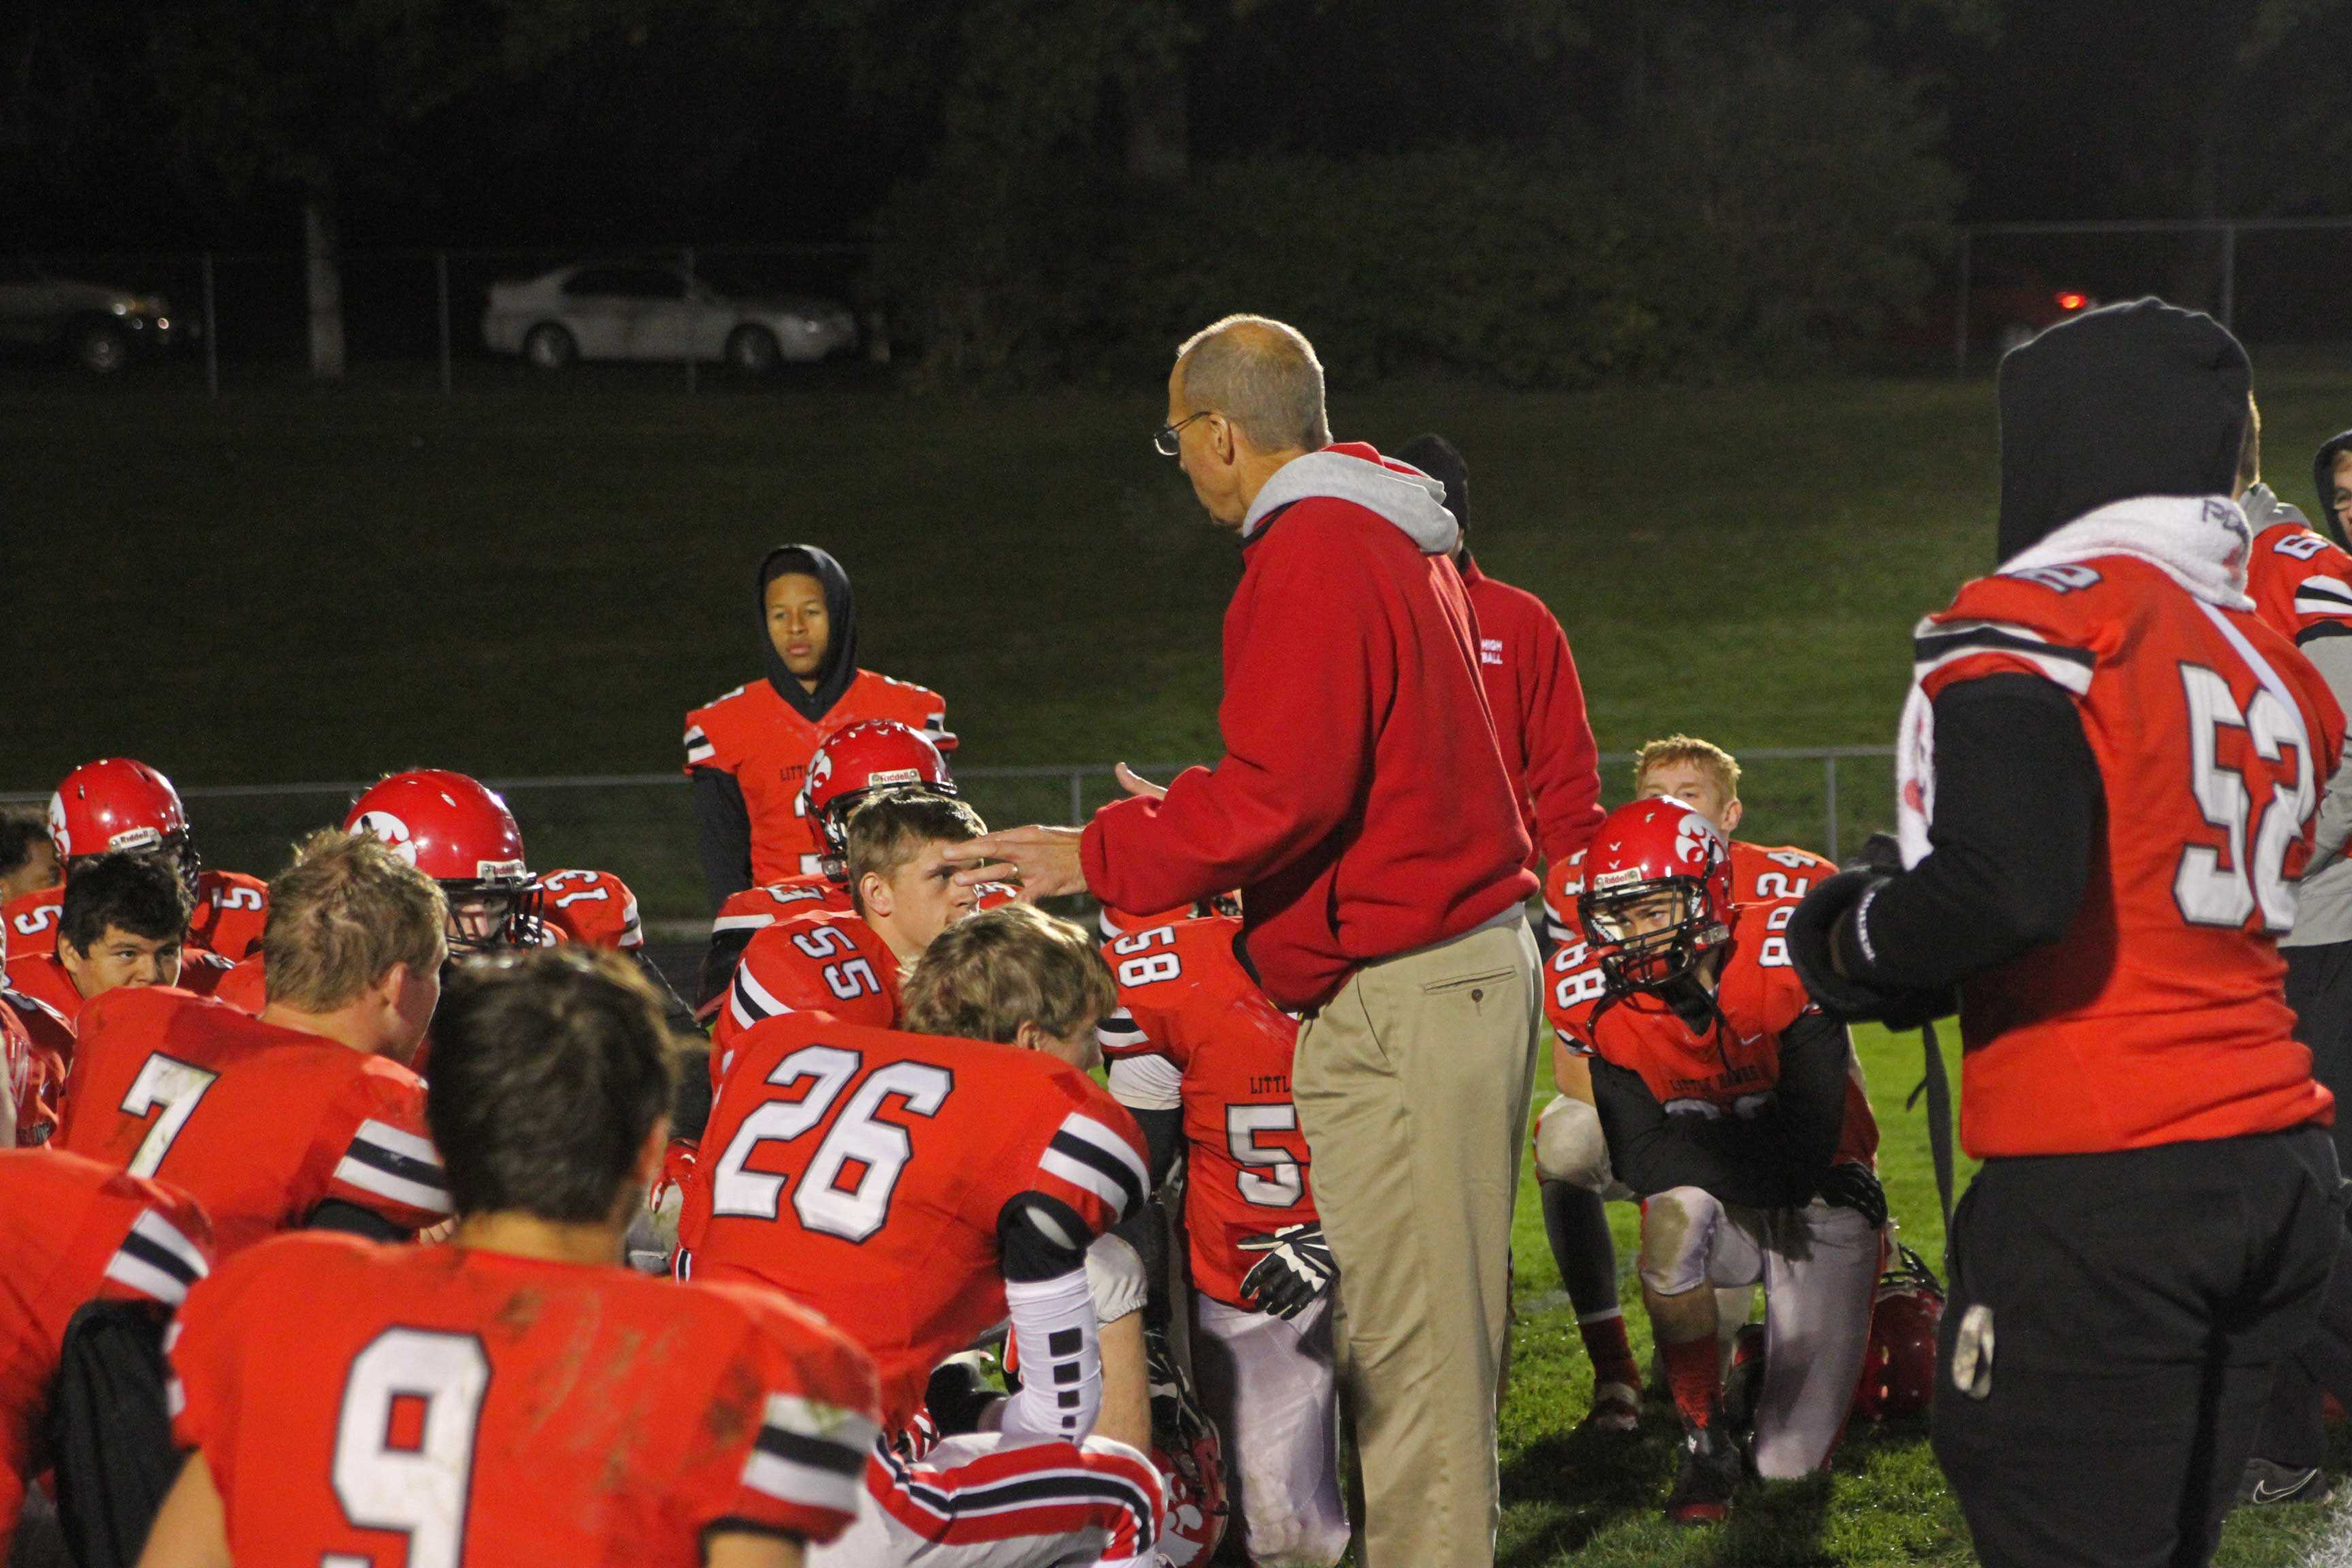 Coach+Sabers+reinforced+that+the+team%27s+loss+should+motivate+them+to+work+harder+as+they+had+earlier+in+the+season+when+they+fell+to+Bettendorf+%287-47%29.